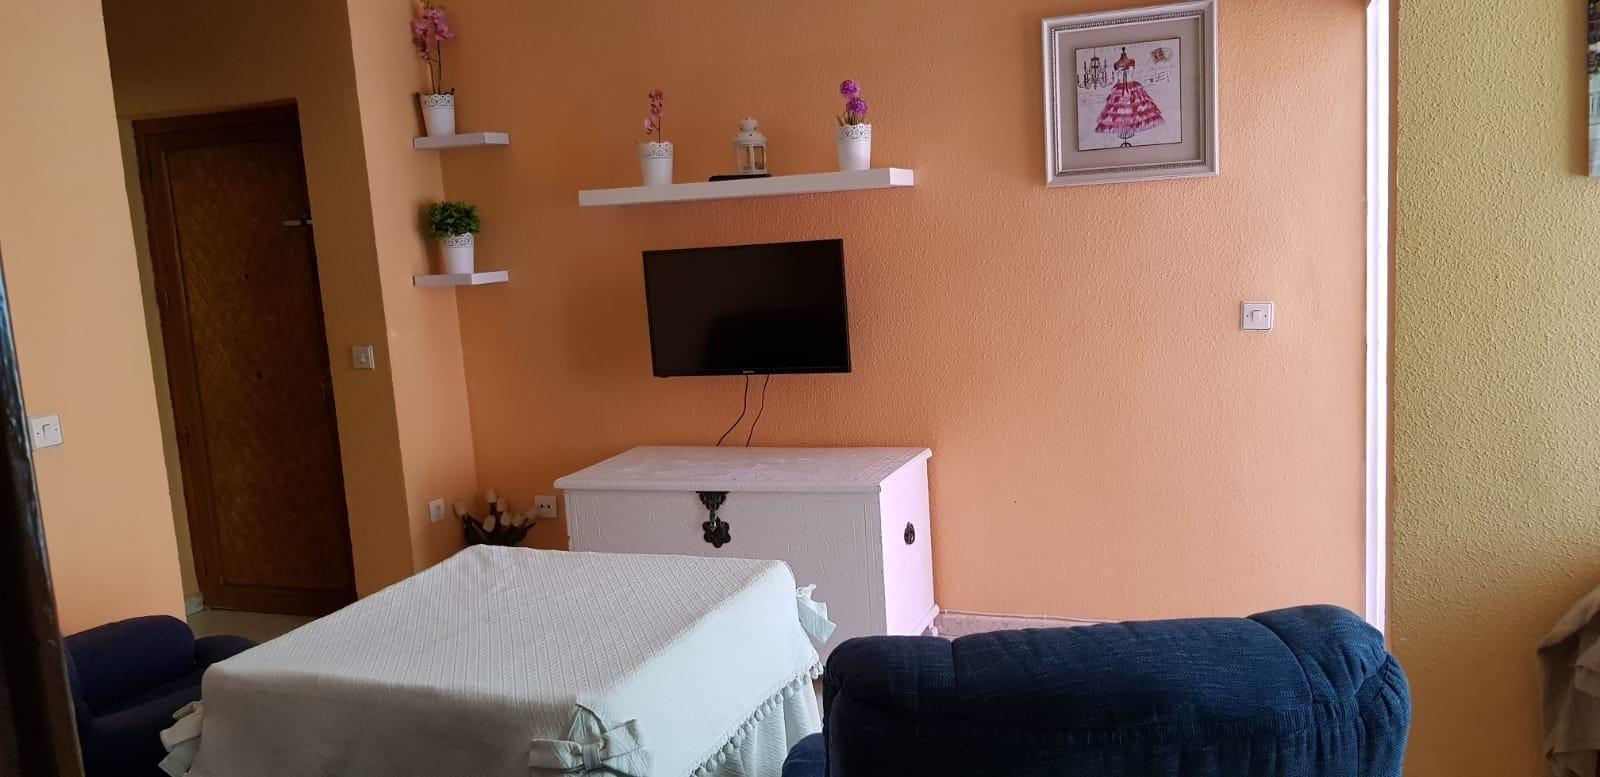 Flat for rent in Casería de Montijo (Granada), 650 €/month (Season, Students)